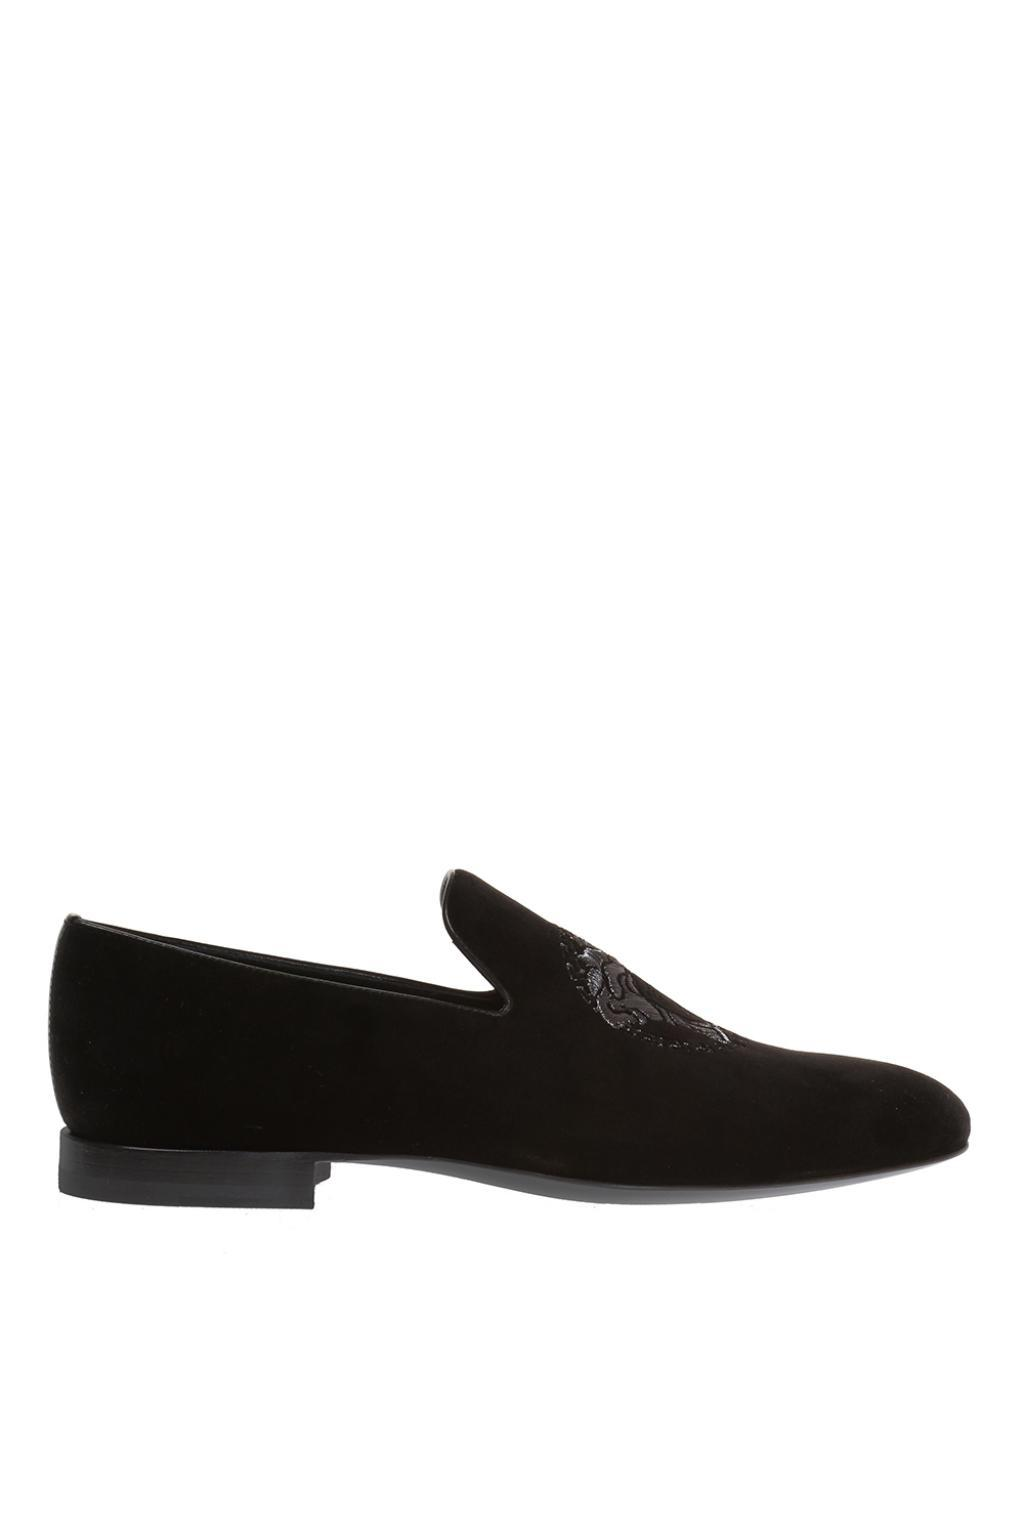 Lanvin Black Calf Hair Tribute Medusa Driver Loafers z8ZSK0gAYP